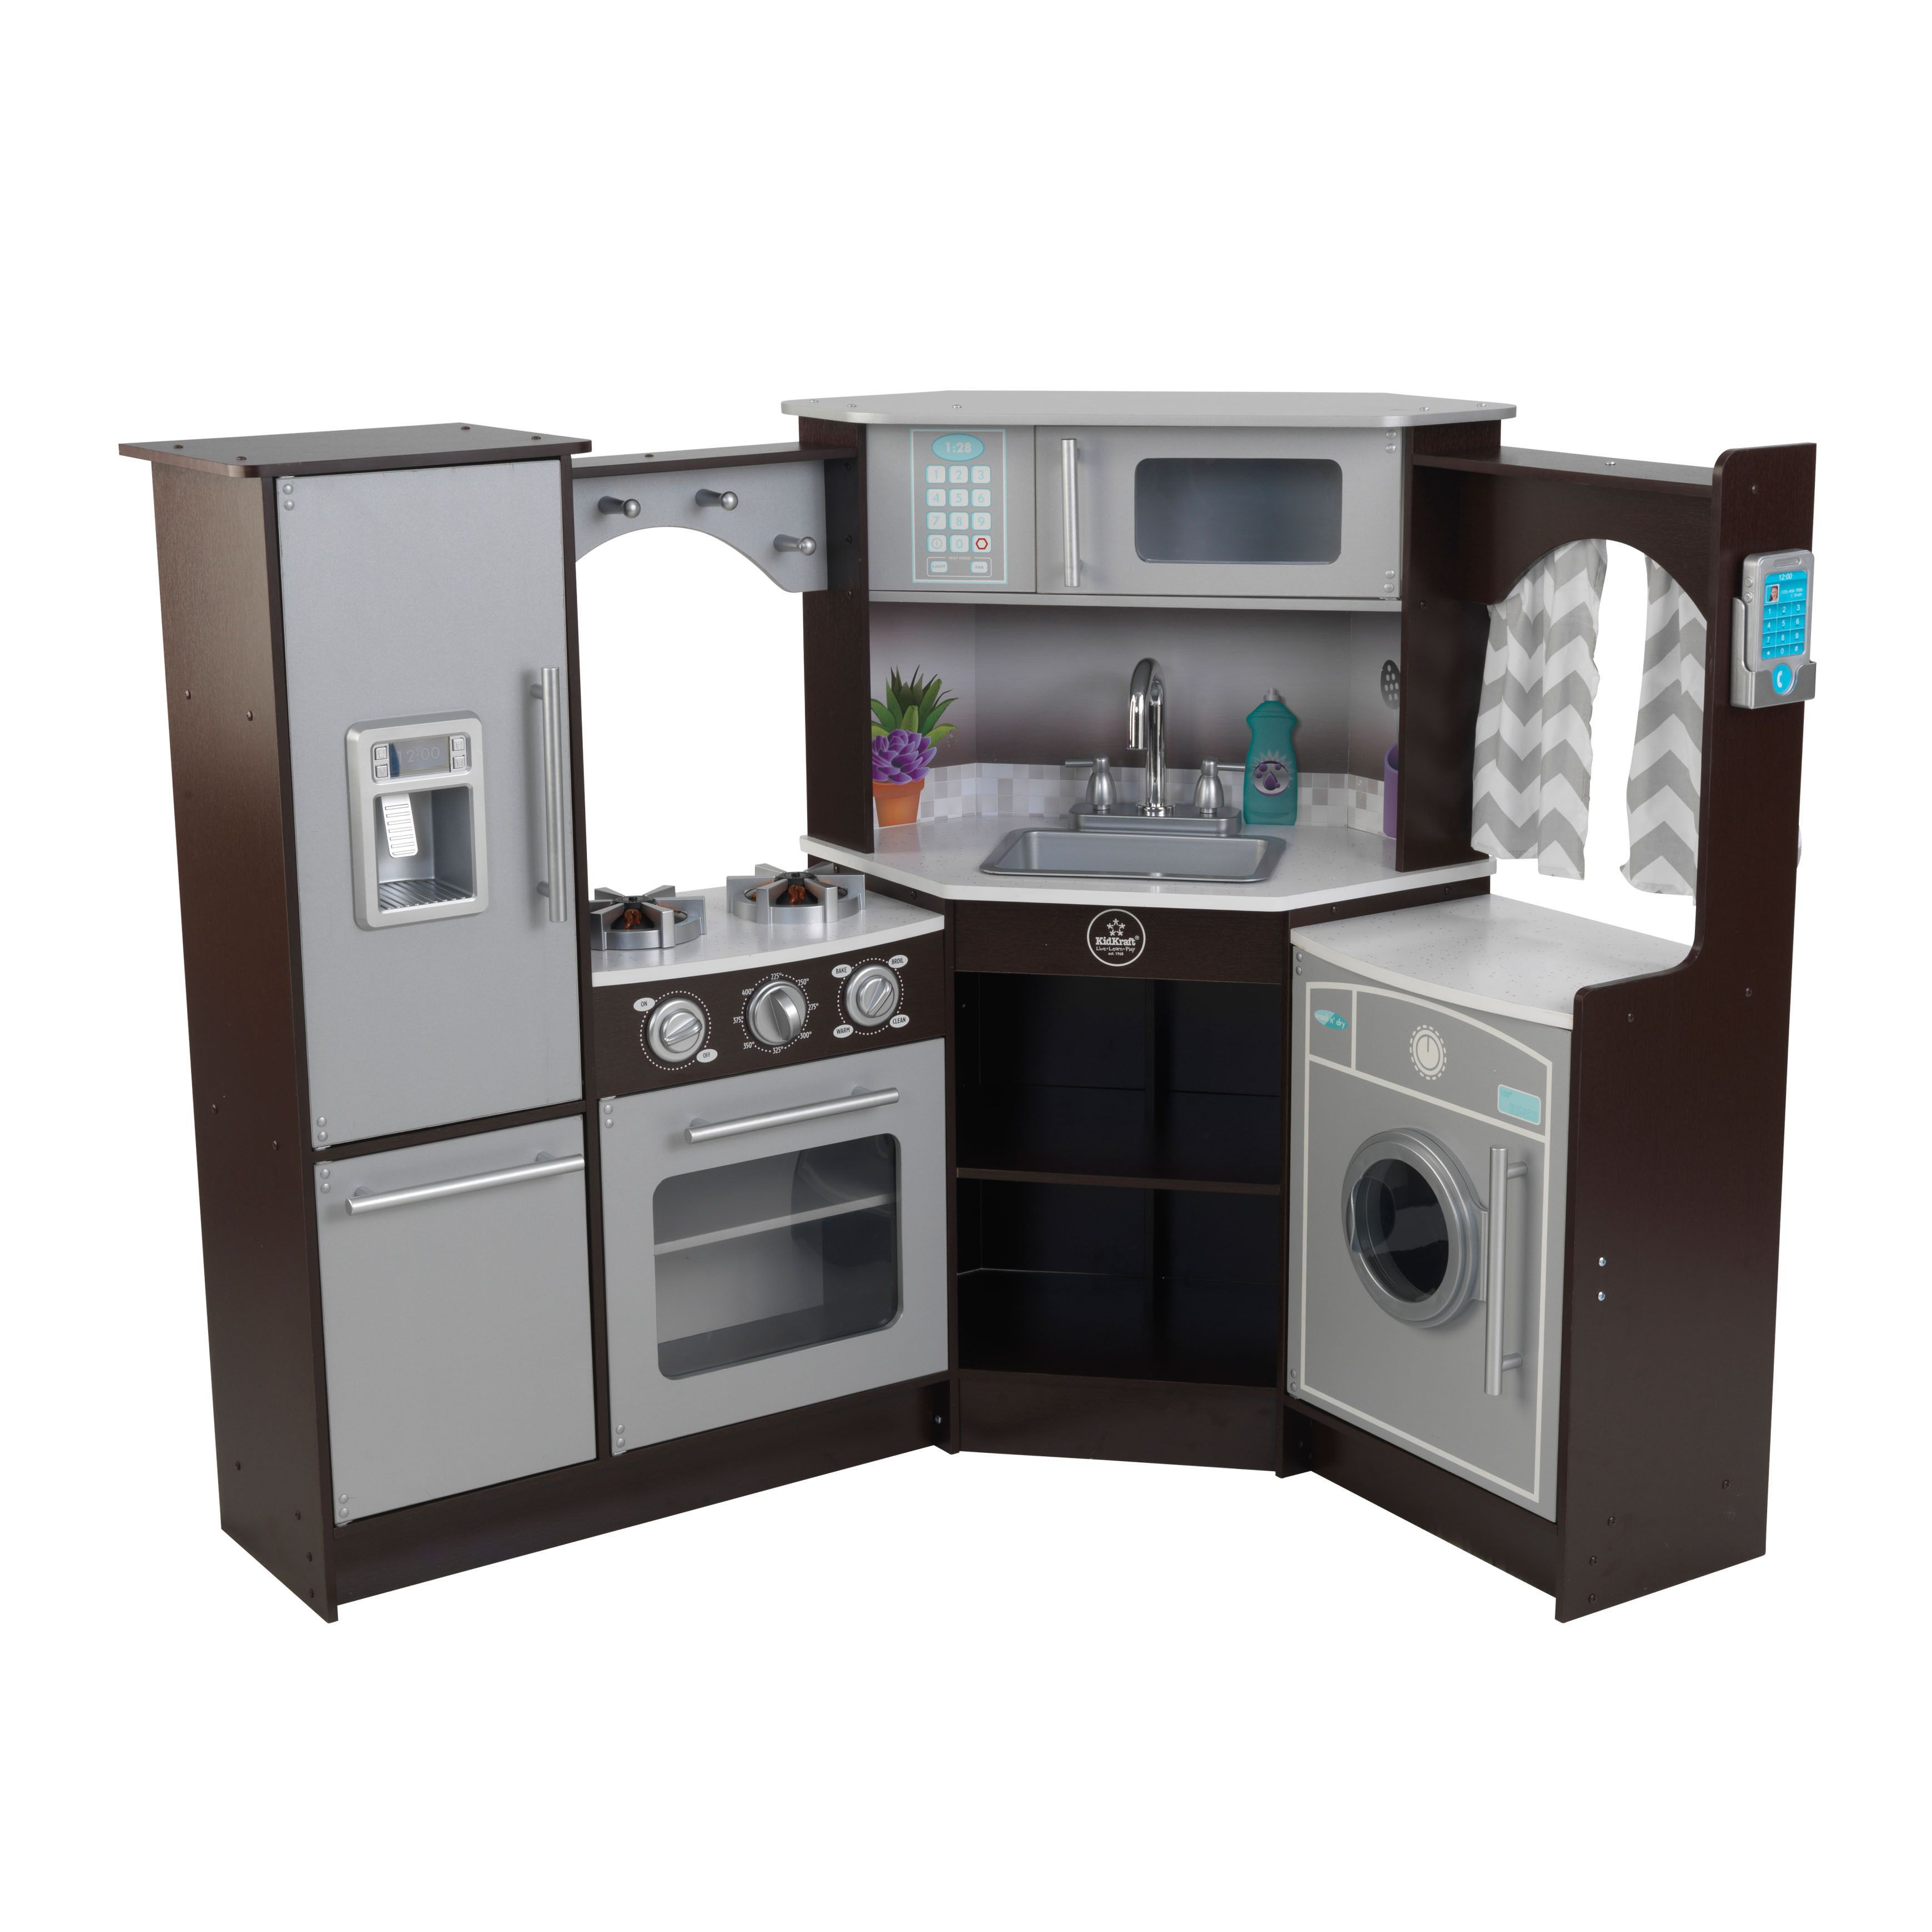 Kidkraft Ultimate Corner Play Kitchen With Lights And Sounds Grey